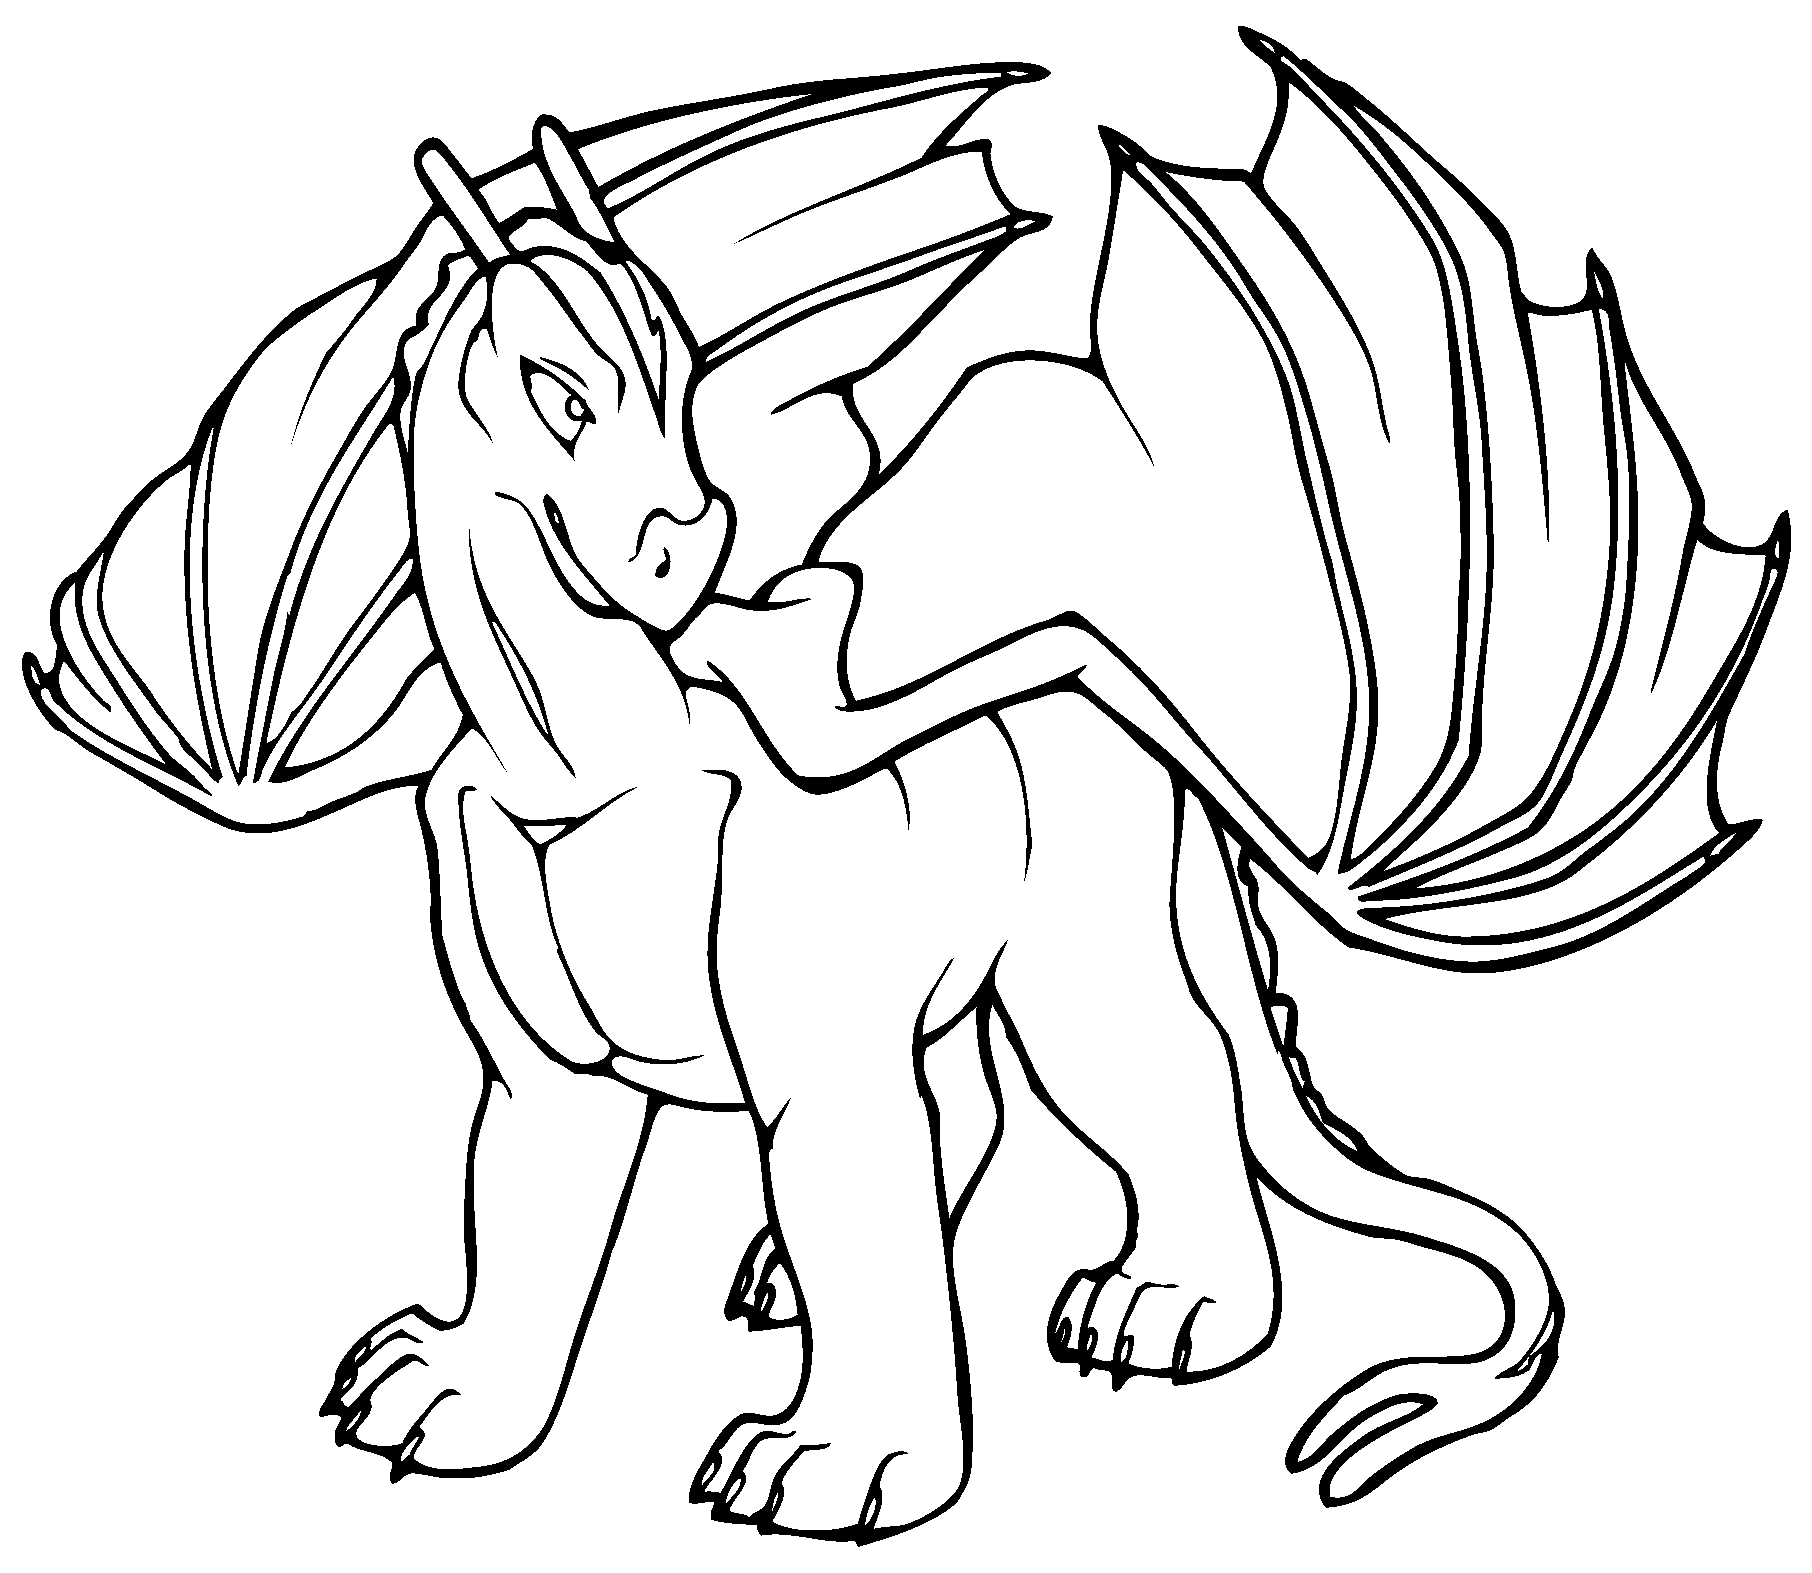 Free Printable Dragon Coloring Pages For Kids Unicorn Coloring Pages Dragon Coloring Page Cute Coloring Pages